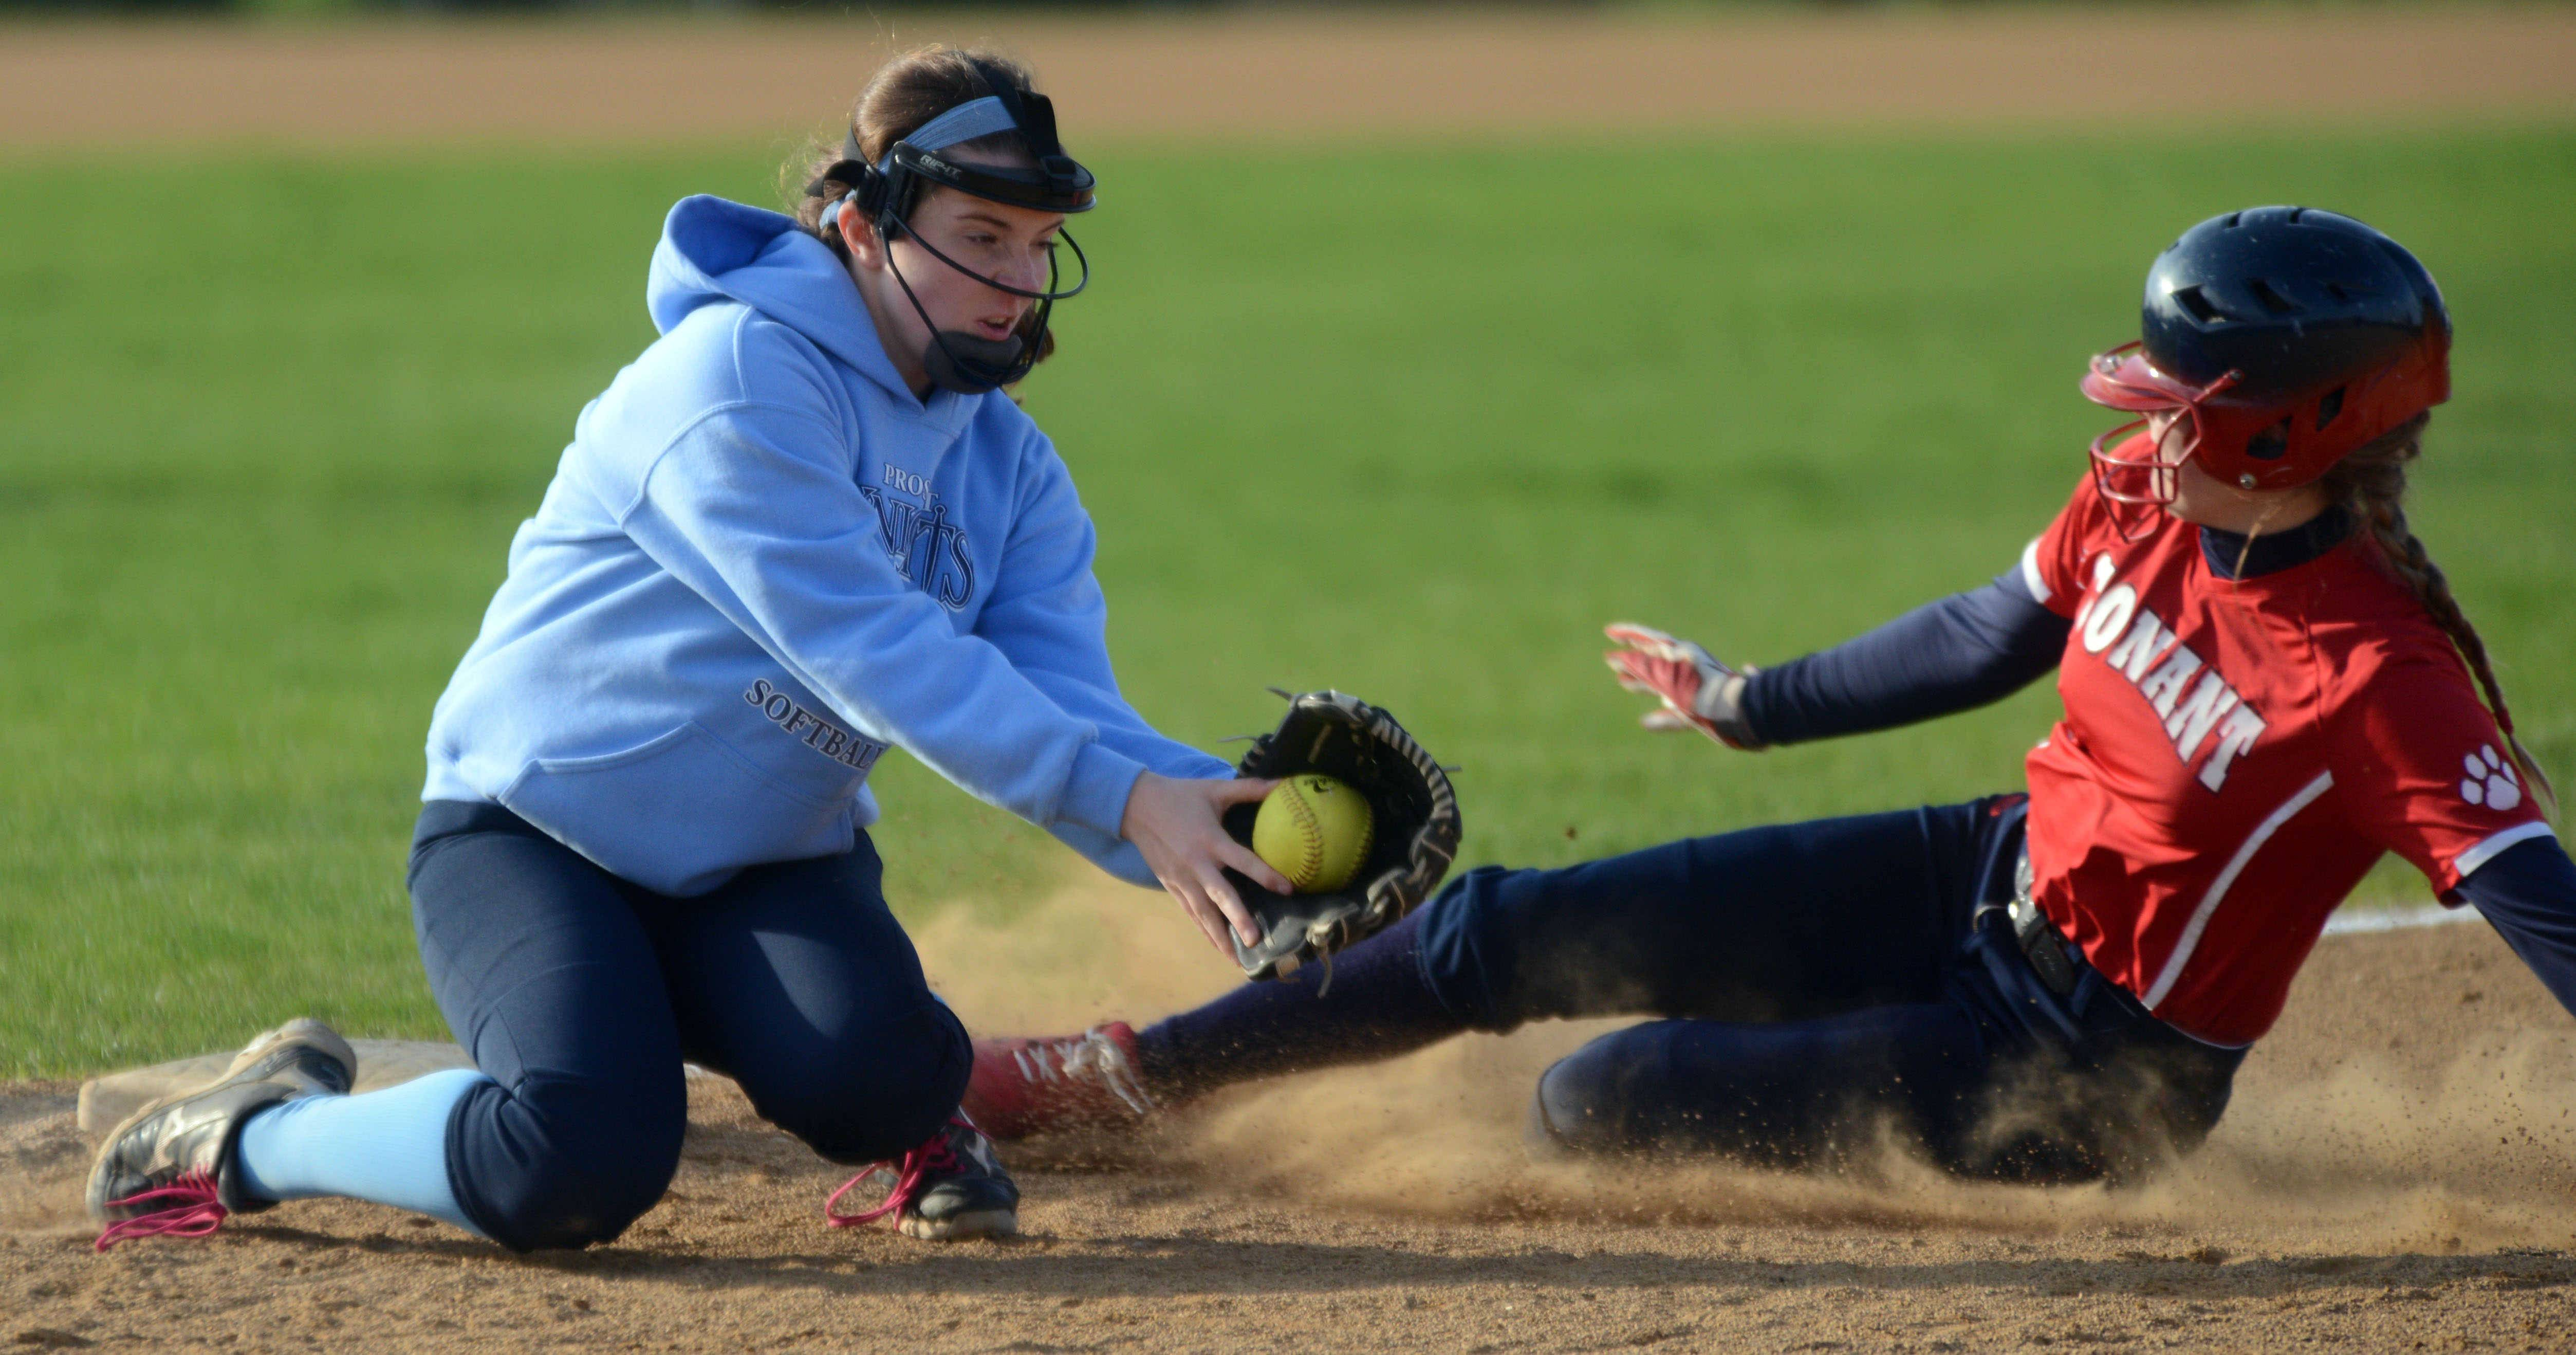 Conant's Sara Neuman, right, is safe at third base ahead of the tag by Prospect's Cate Meersman on Monday night.